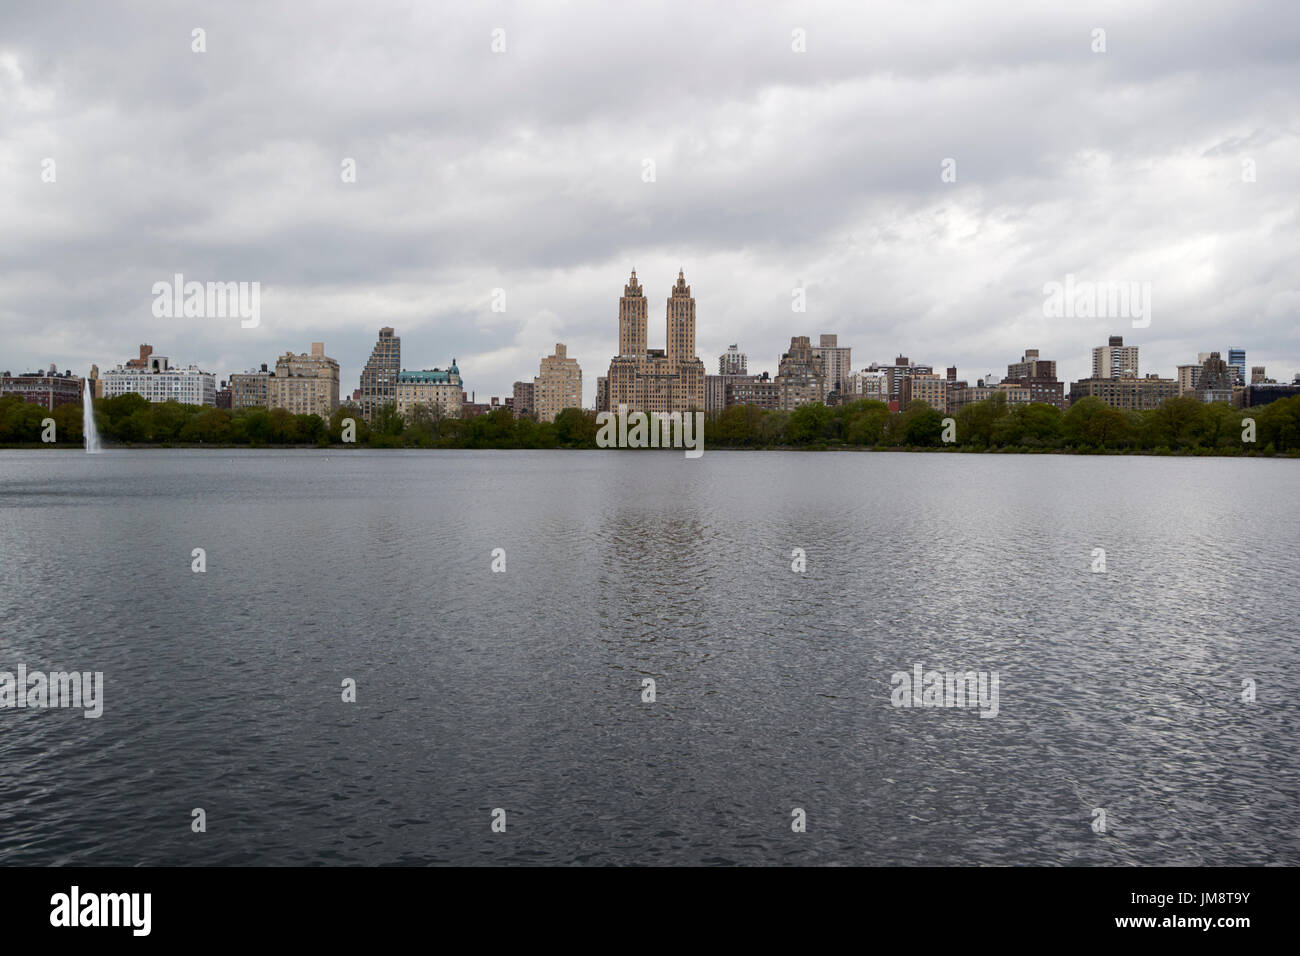 jacqueline kennedy onassis reservoir central park with view of upper west side on dull overcast day New York City USA - Stock Image